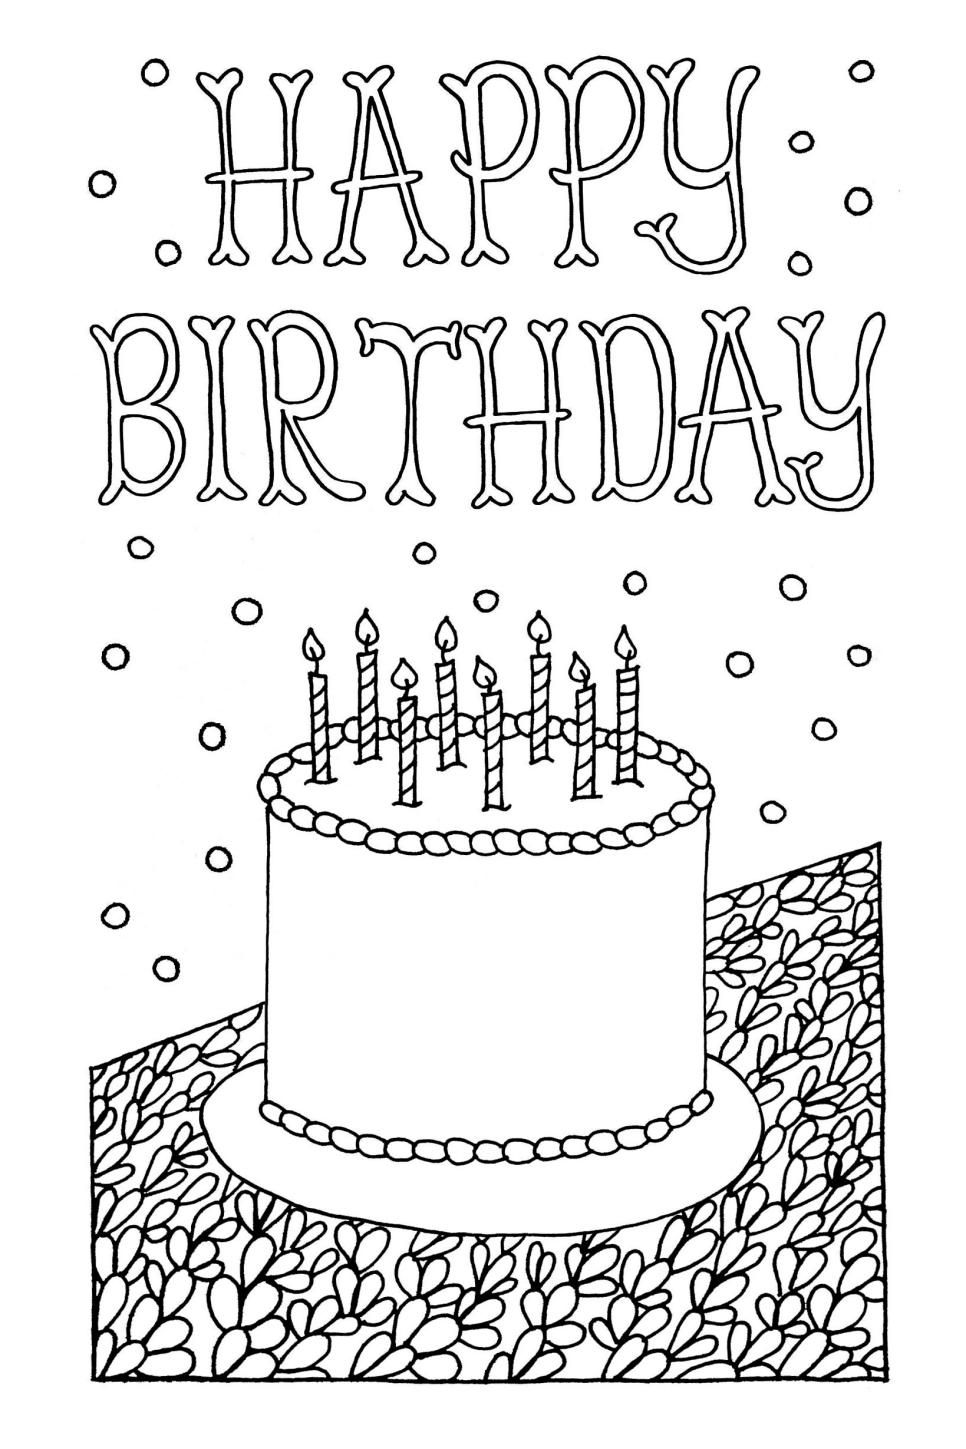 photo about Printable Birthday Cards to Color identify Totally free Downloadable Grownup Coloring Greeting Playing cards Do-it-yourself Presents